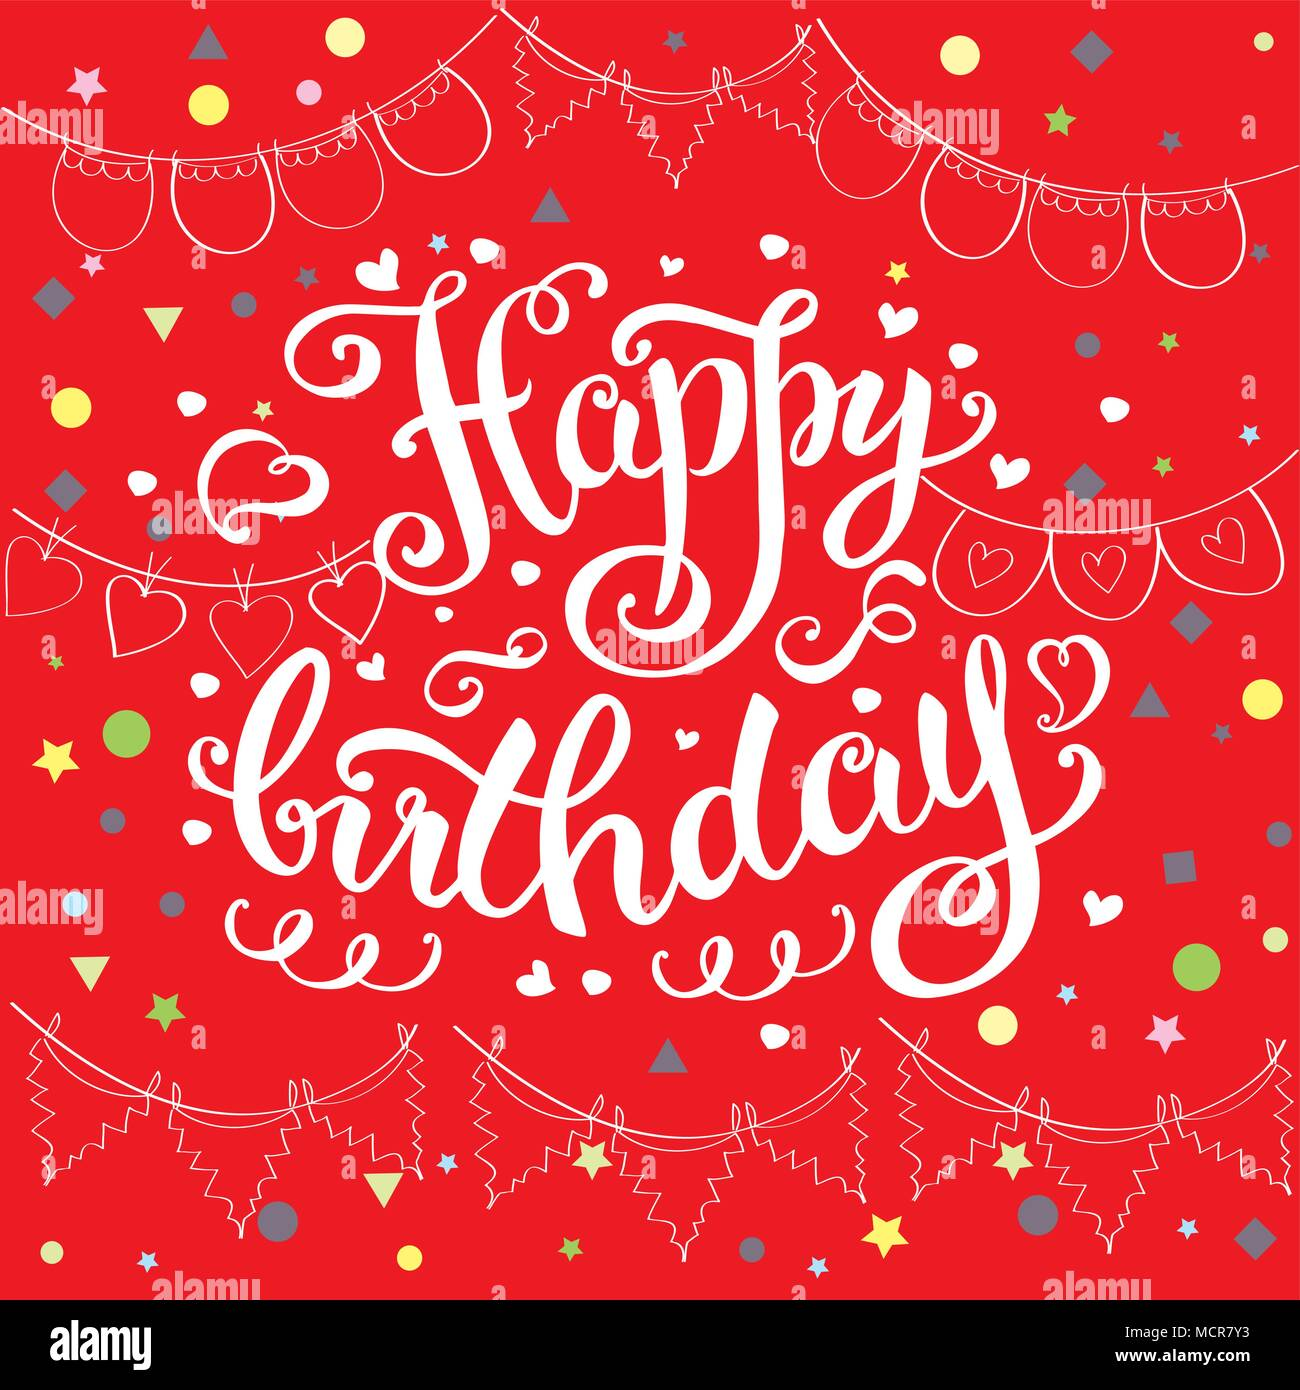 Happy birthday card, hand drawn ettering on red background,stock